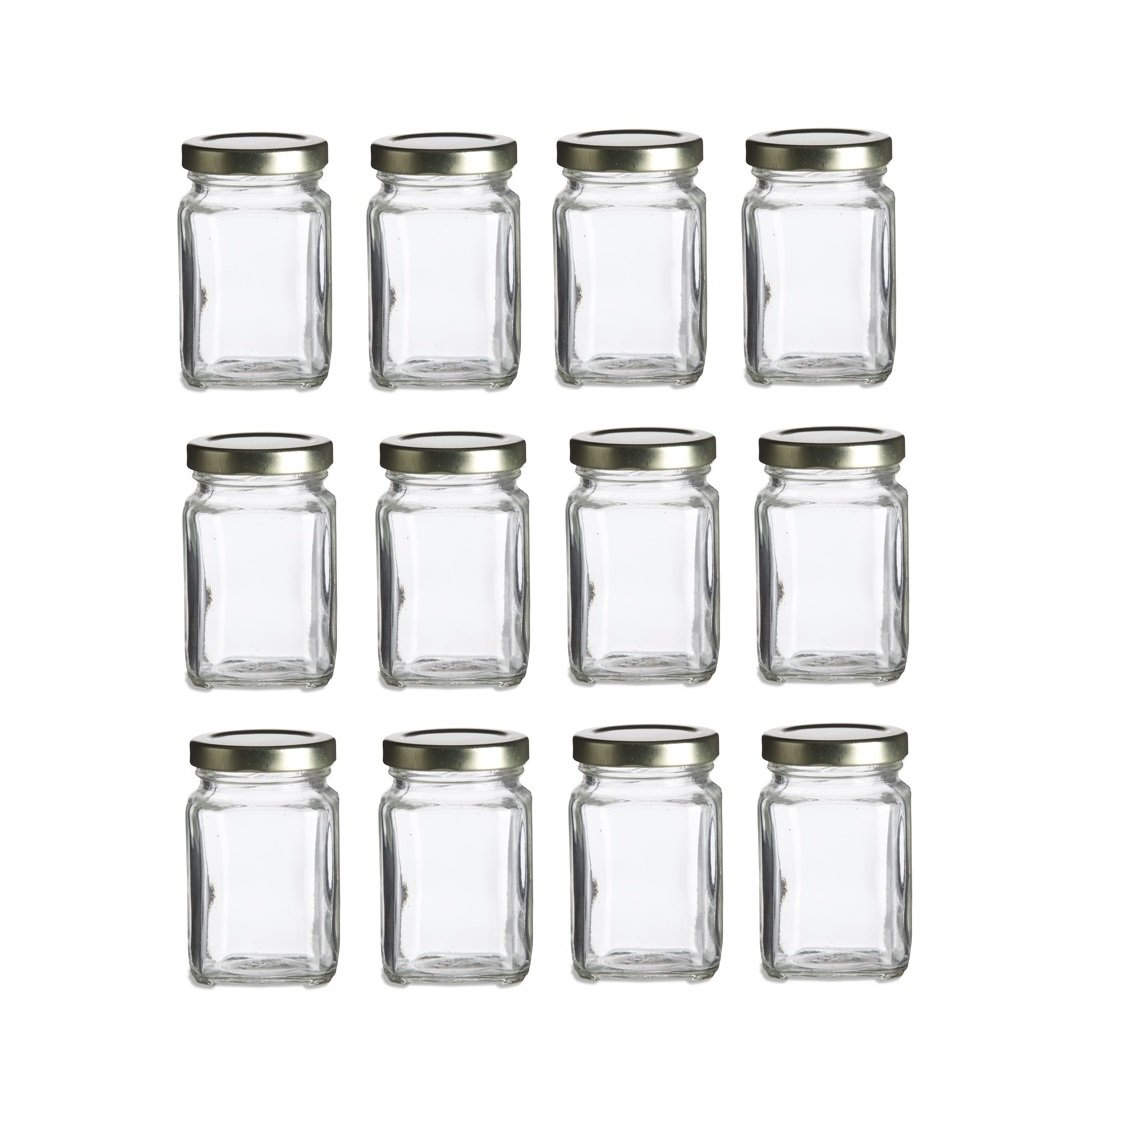 Amazon.com: Nakpunar 12 pcs, 3.75 oz Mini Square Glass Jars for Jam ...